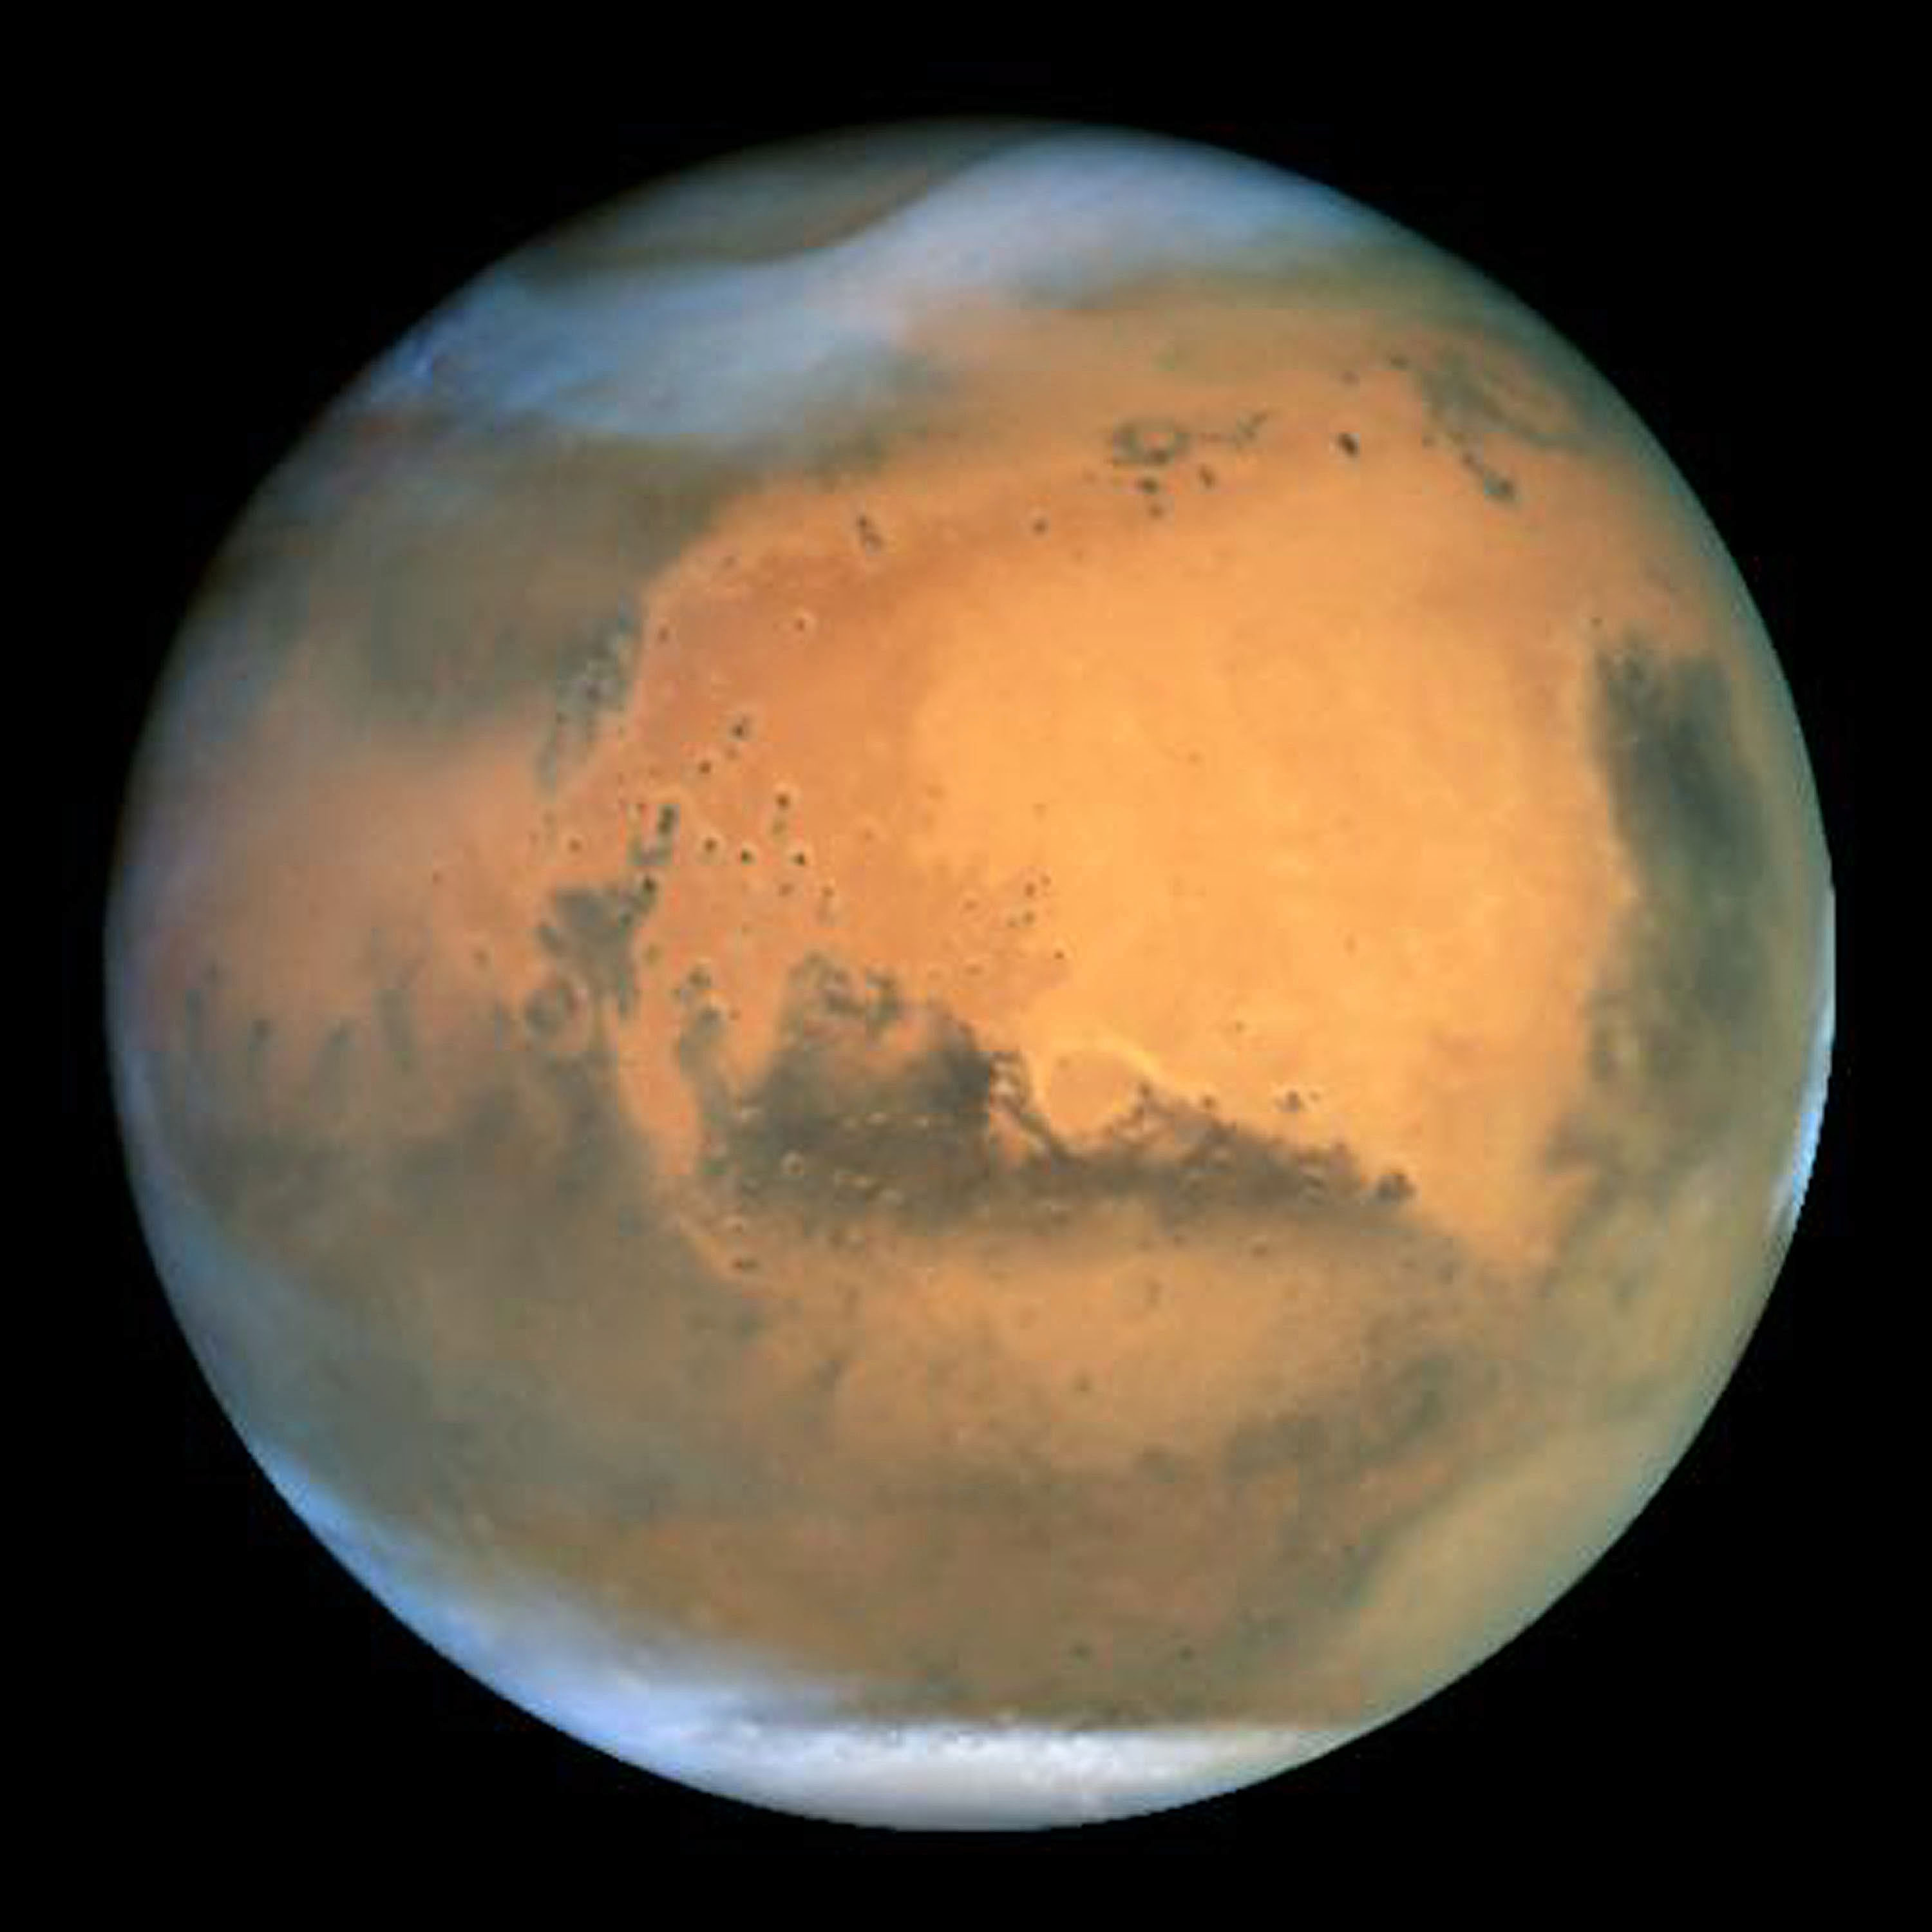 NASA's Earth-orbiting Hubble Space Telescope took this picture of Mars.